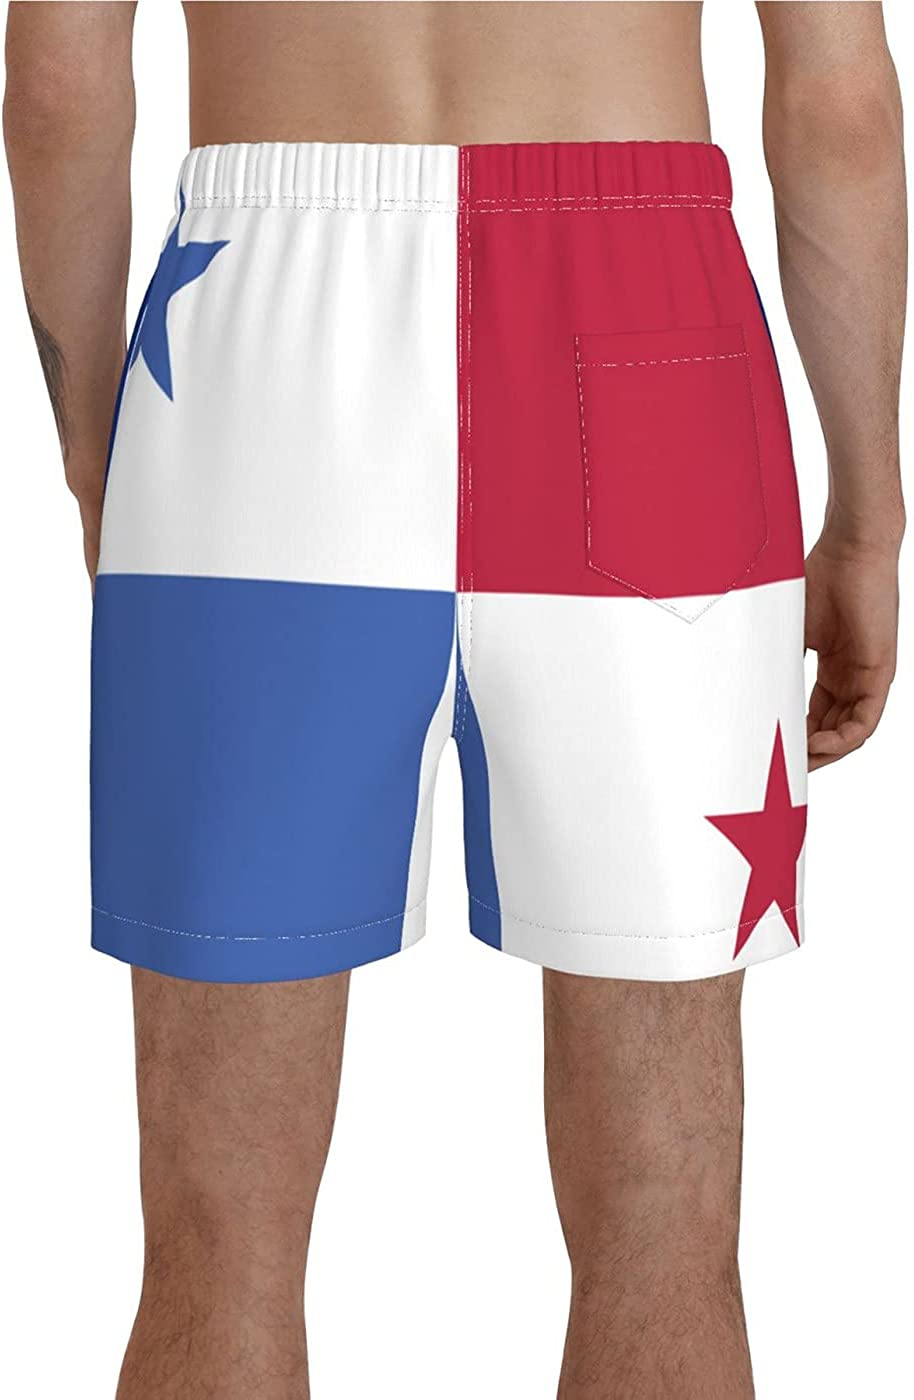 Count Kansas State Flag Men's 3D Printed Funny Summer Quick Dry Swim Short Board Shorts with